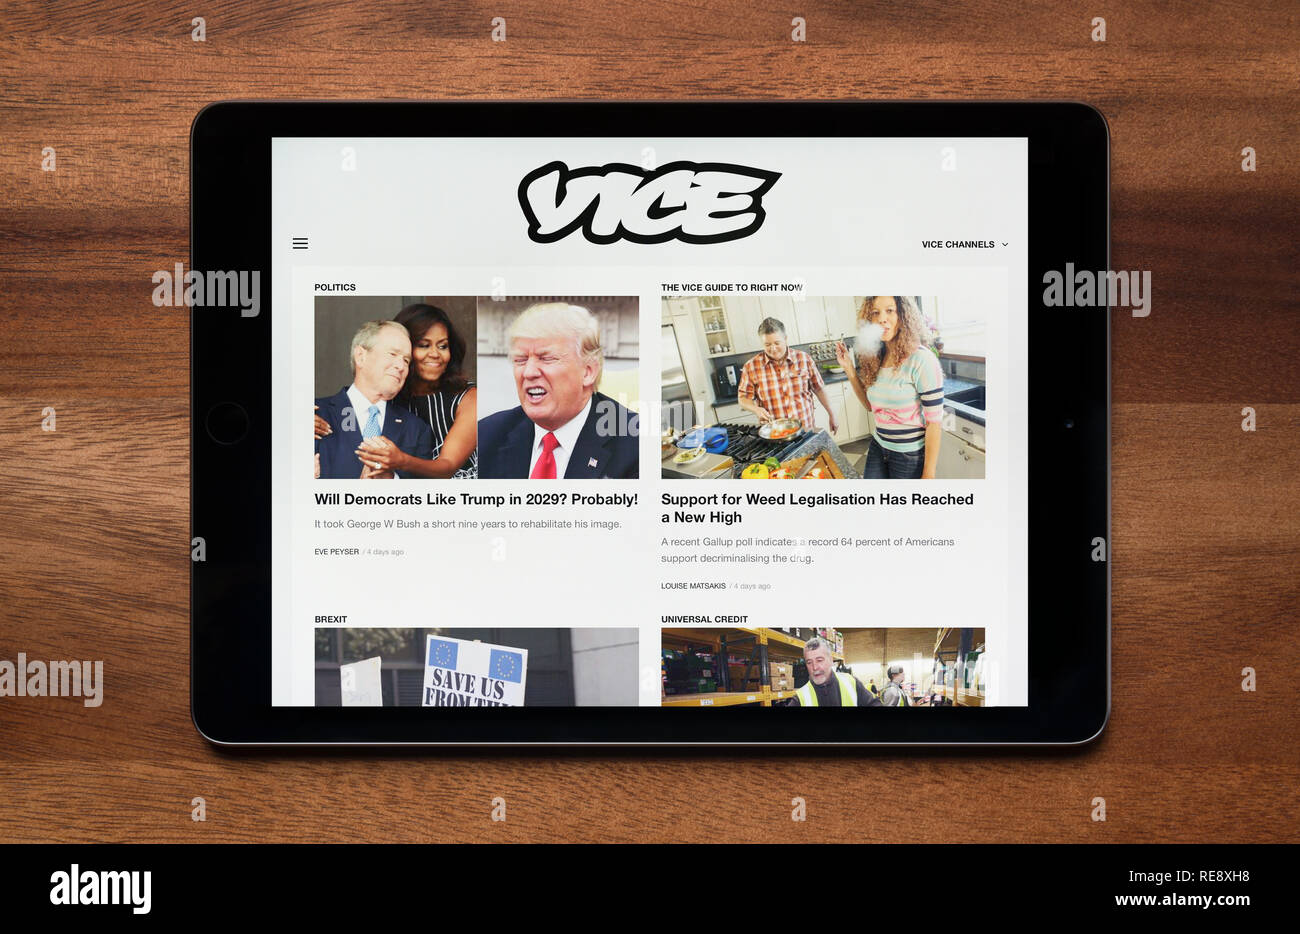 The website of Vice is seen on an iPad tablet, which is resting on a wooden table (Editorial use only). - Stock Image